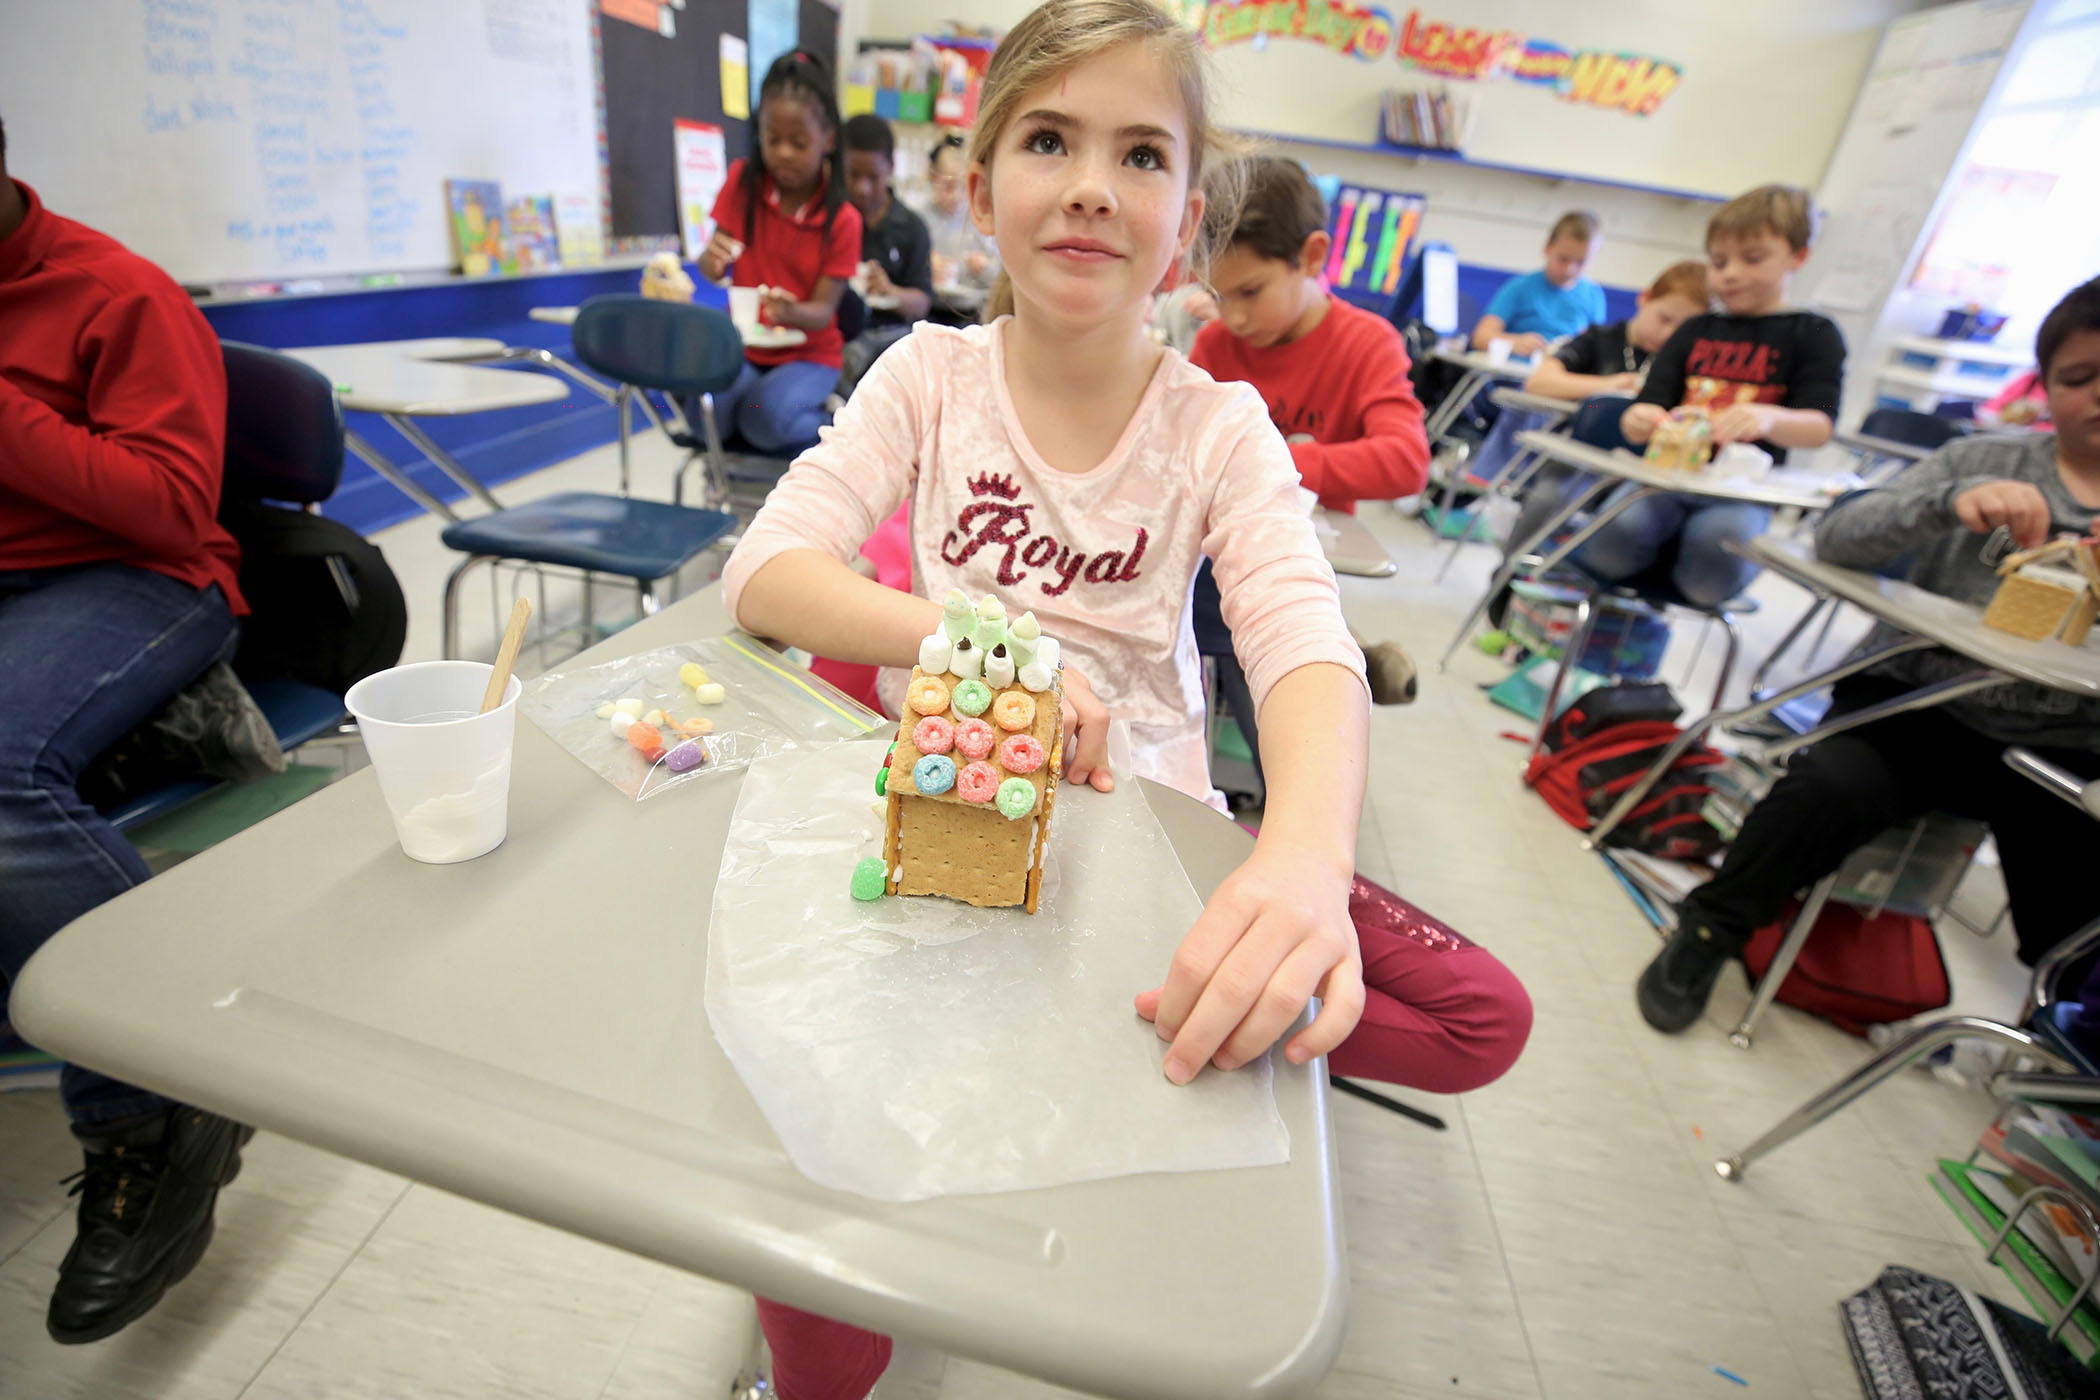 Mrs. Lafferty's 3rd grade class decorates her room with homemade gingerbread houses.